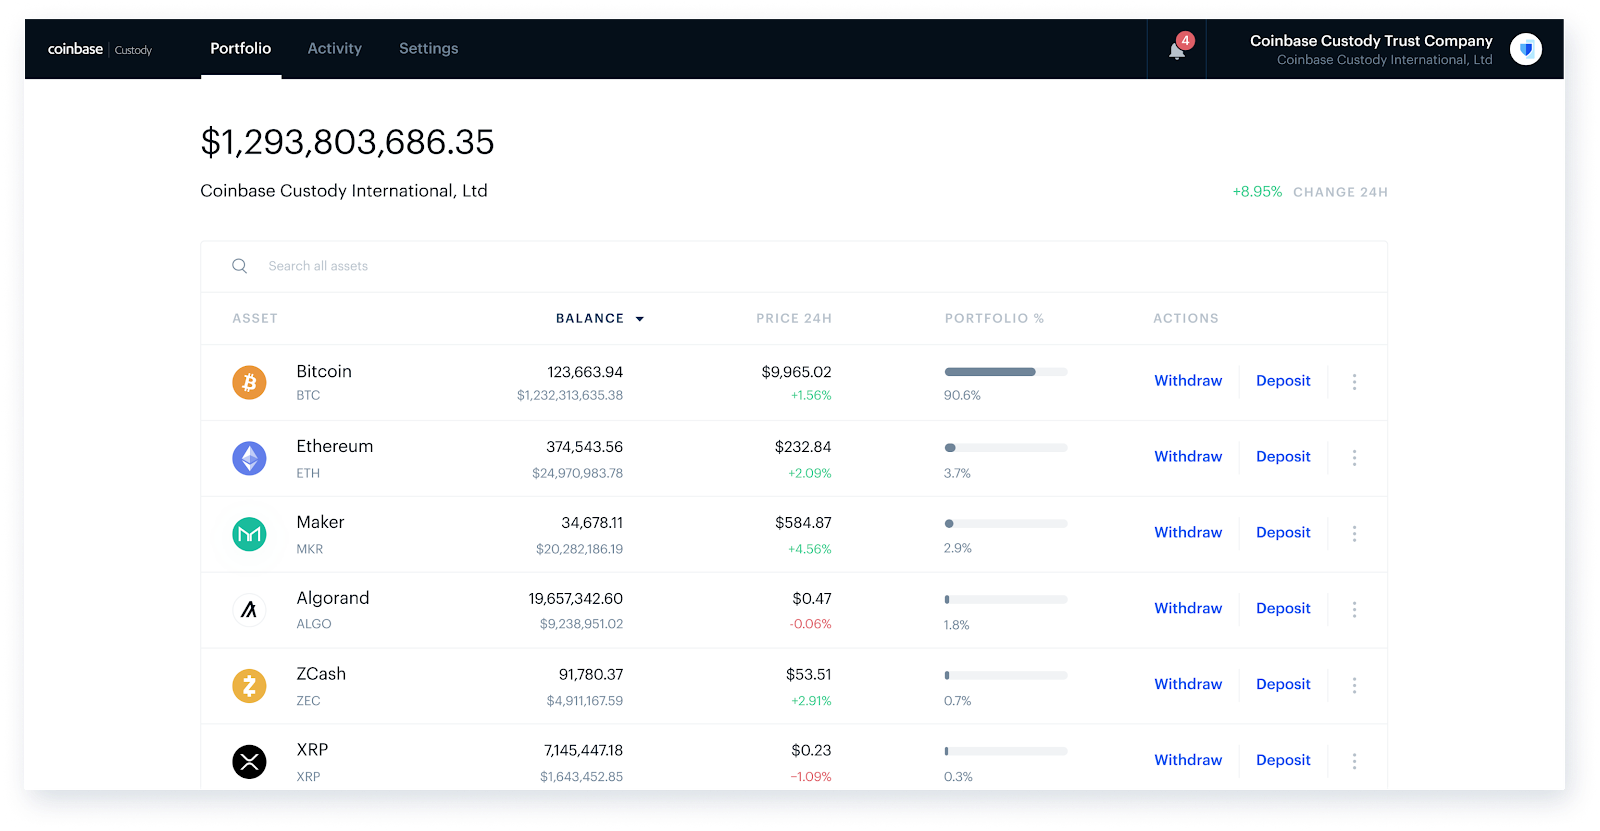 Coinbase Custody launches a redesigned product experience